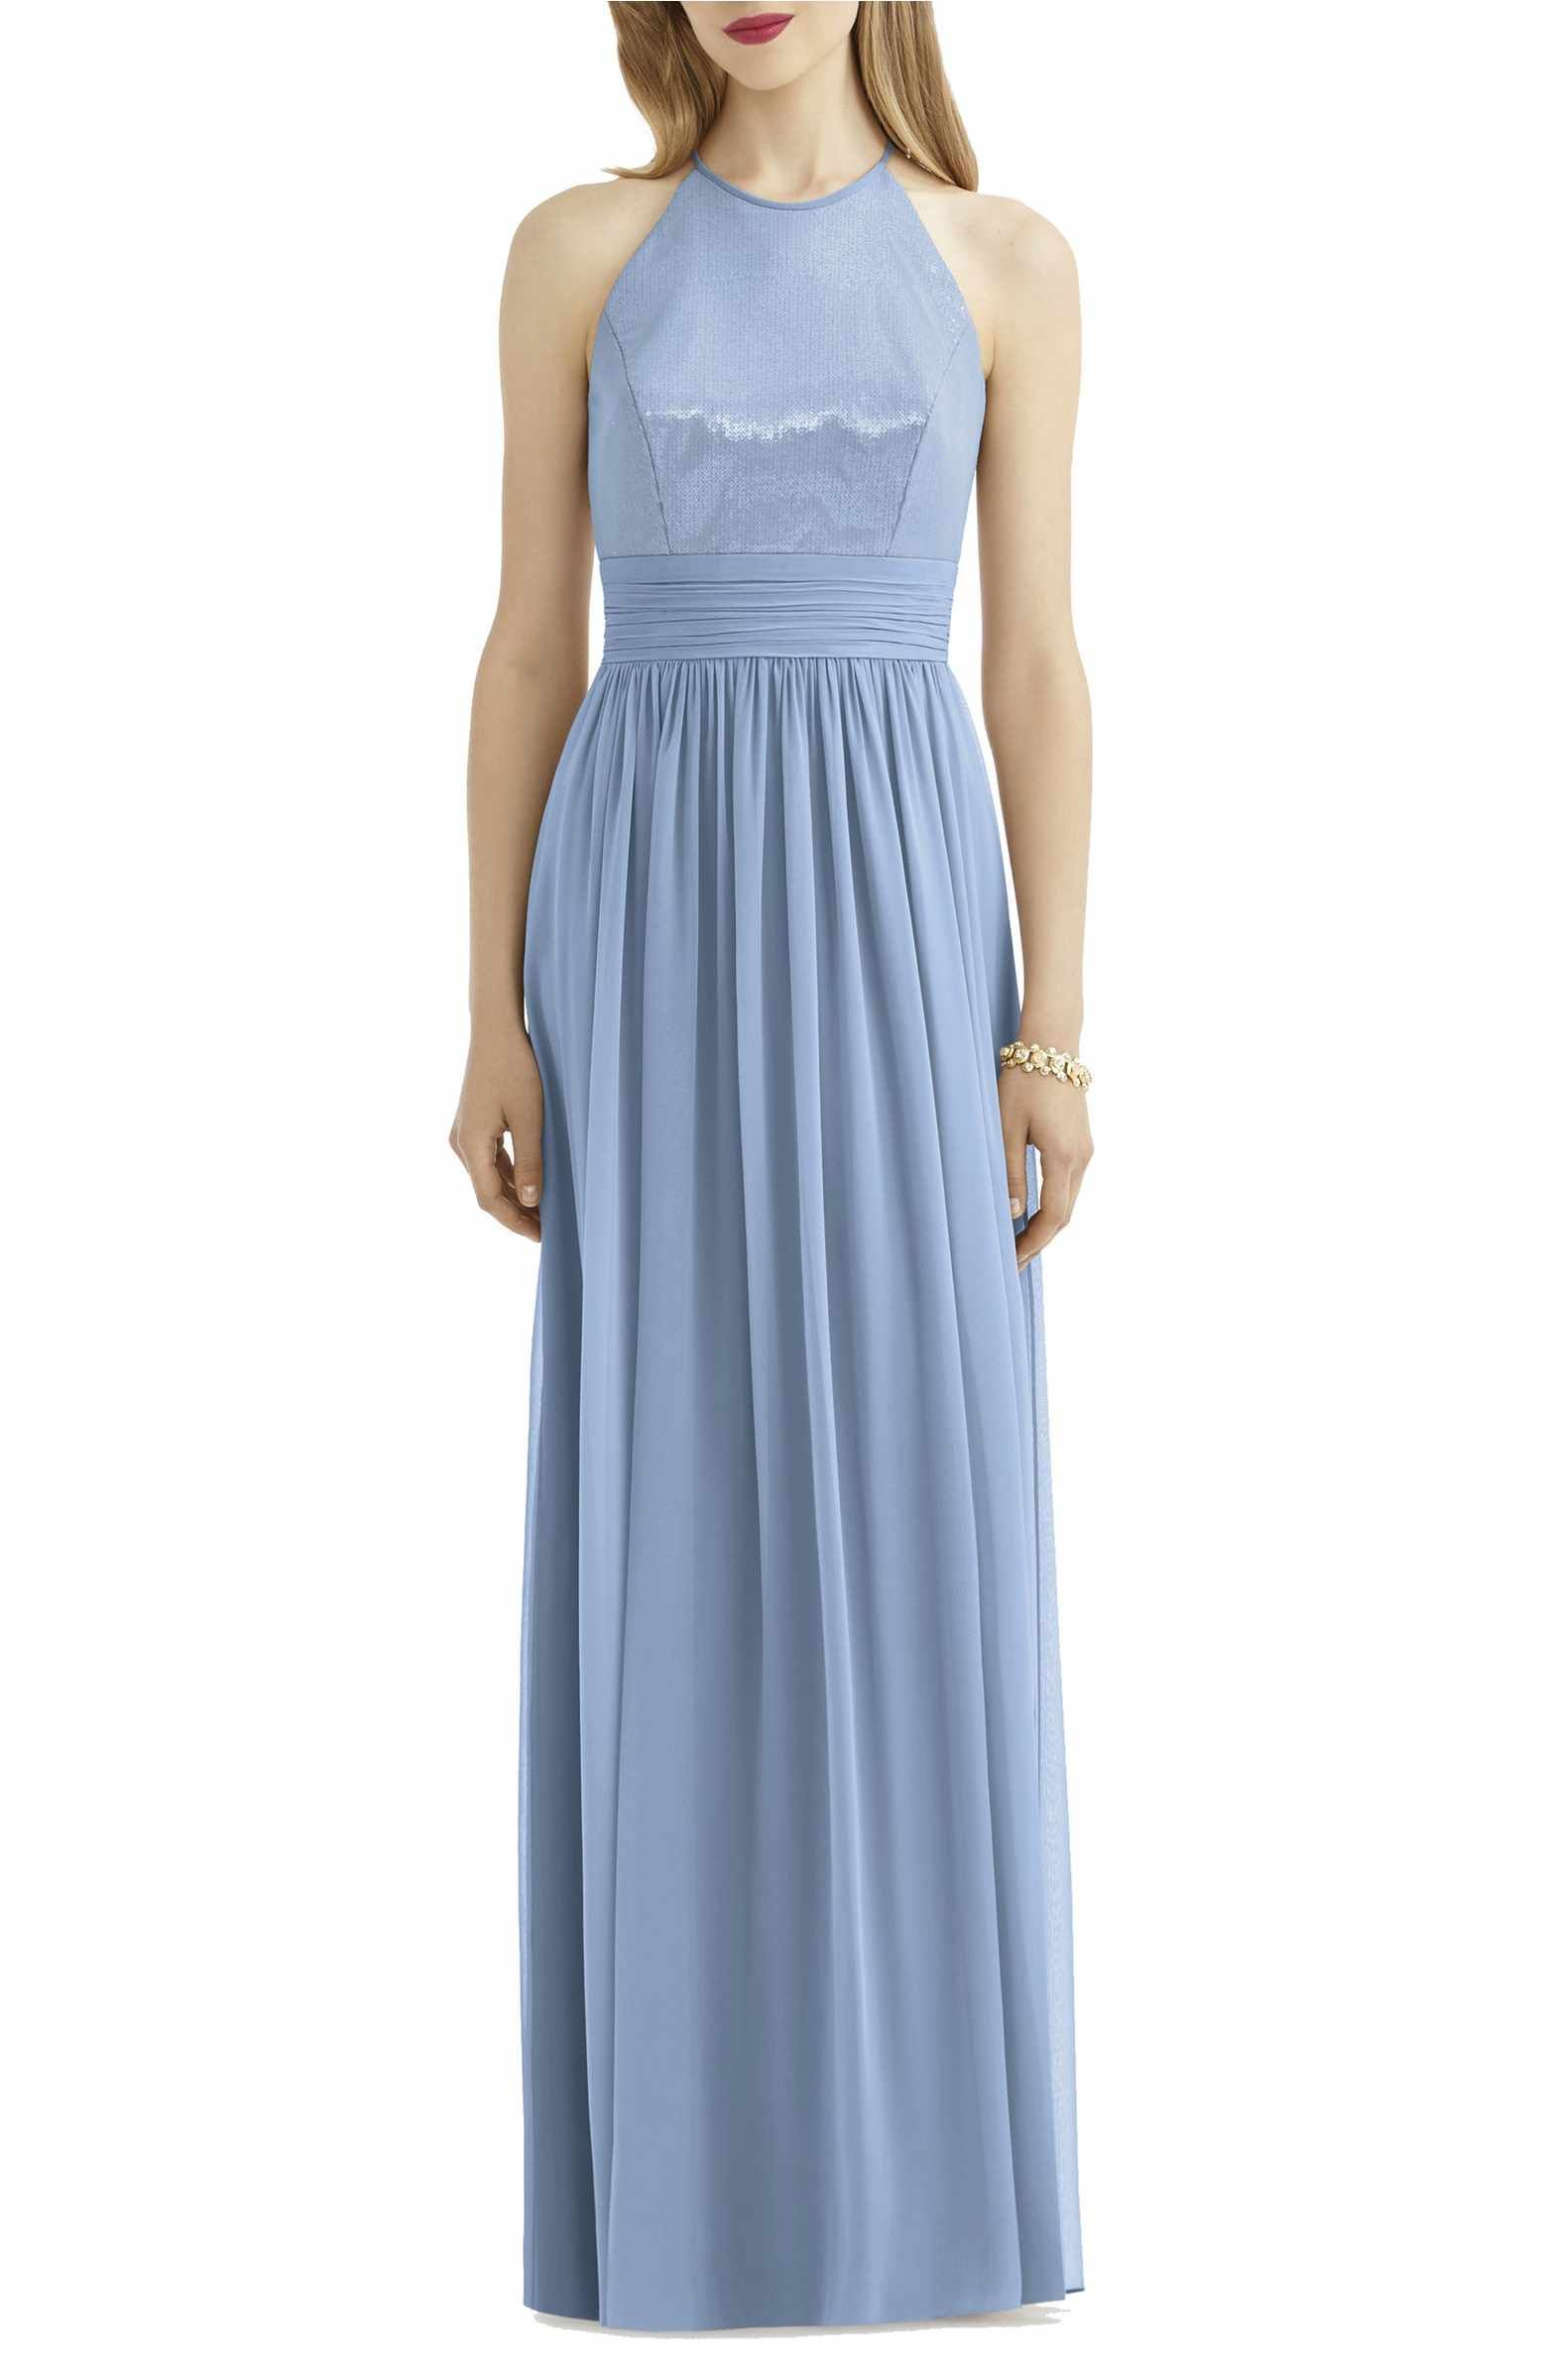 Sequin Open Back Chiffon Gown | Chiffon gown and Gowns